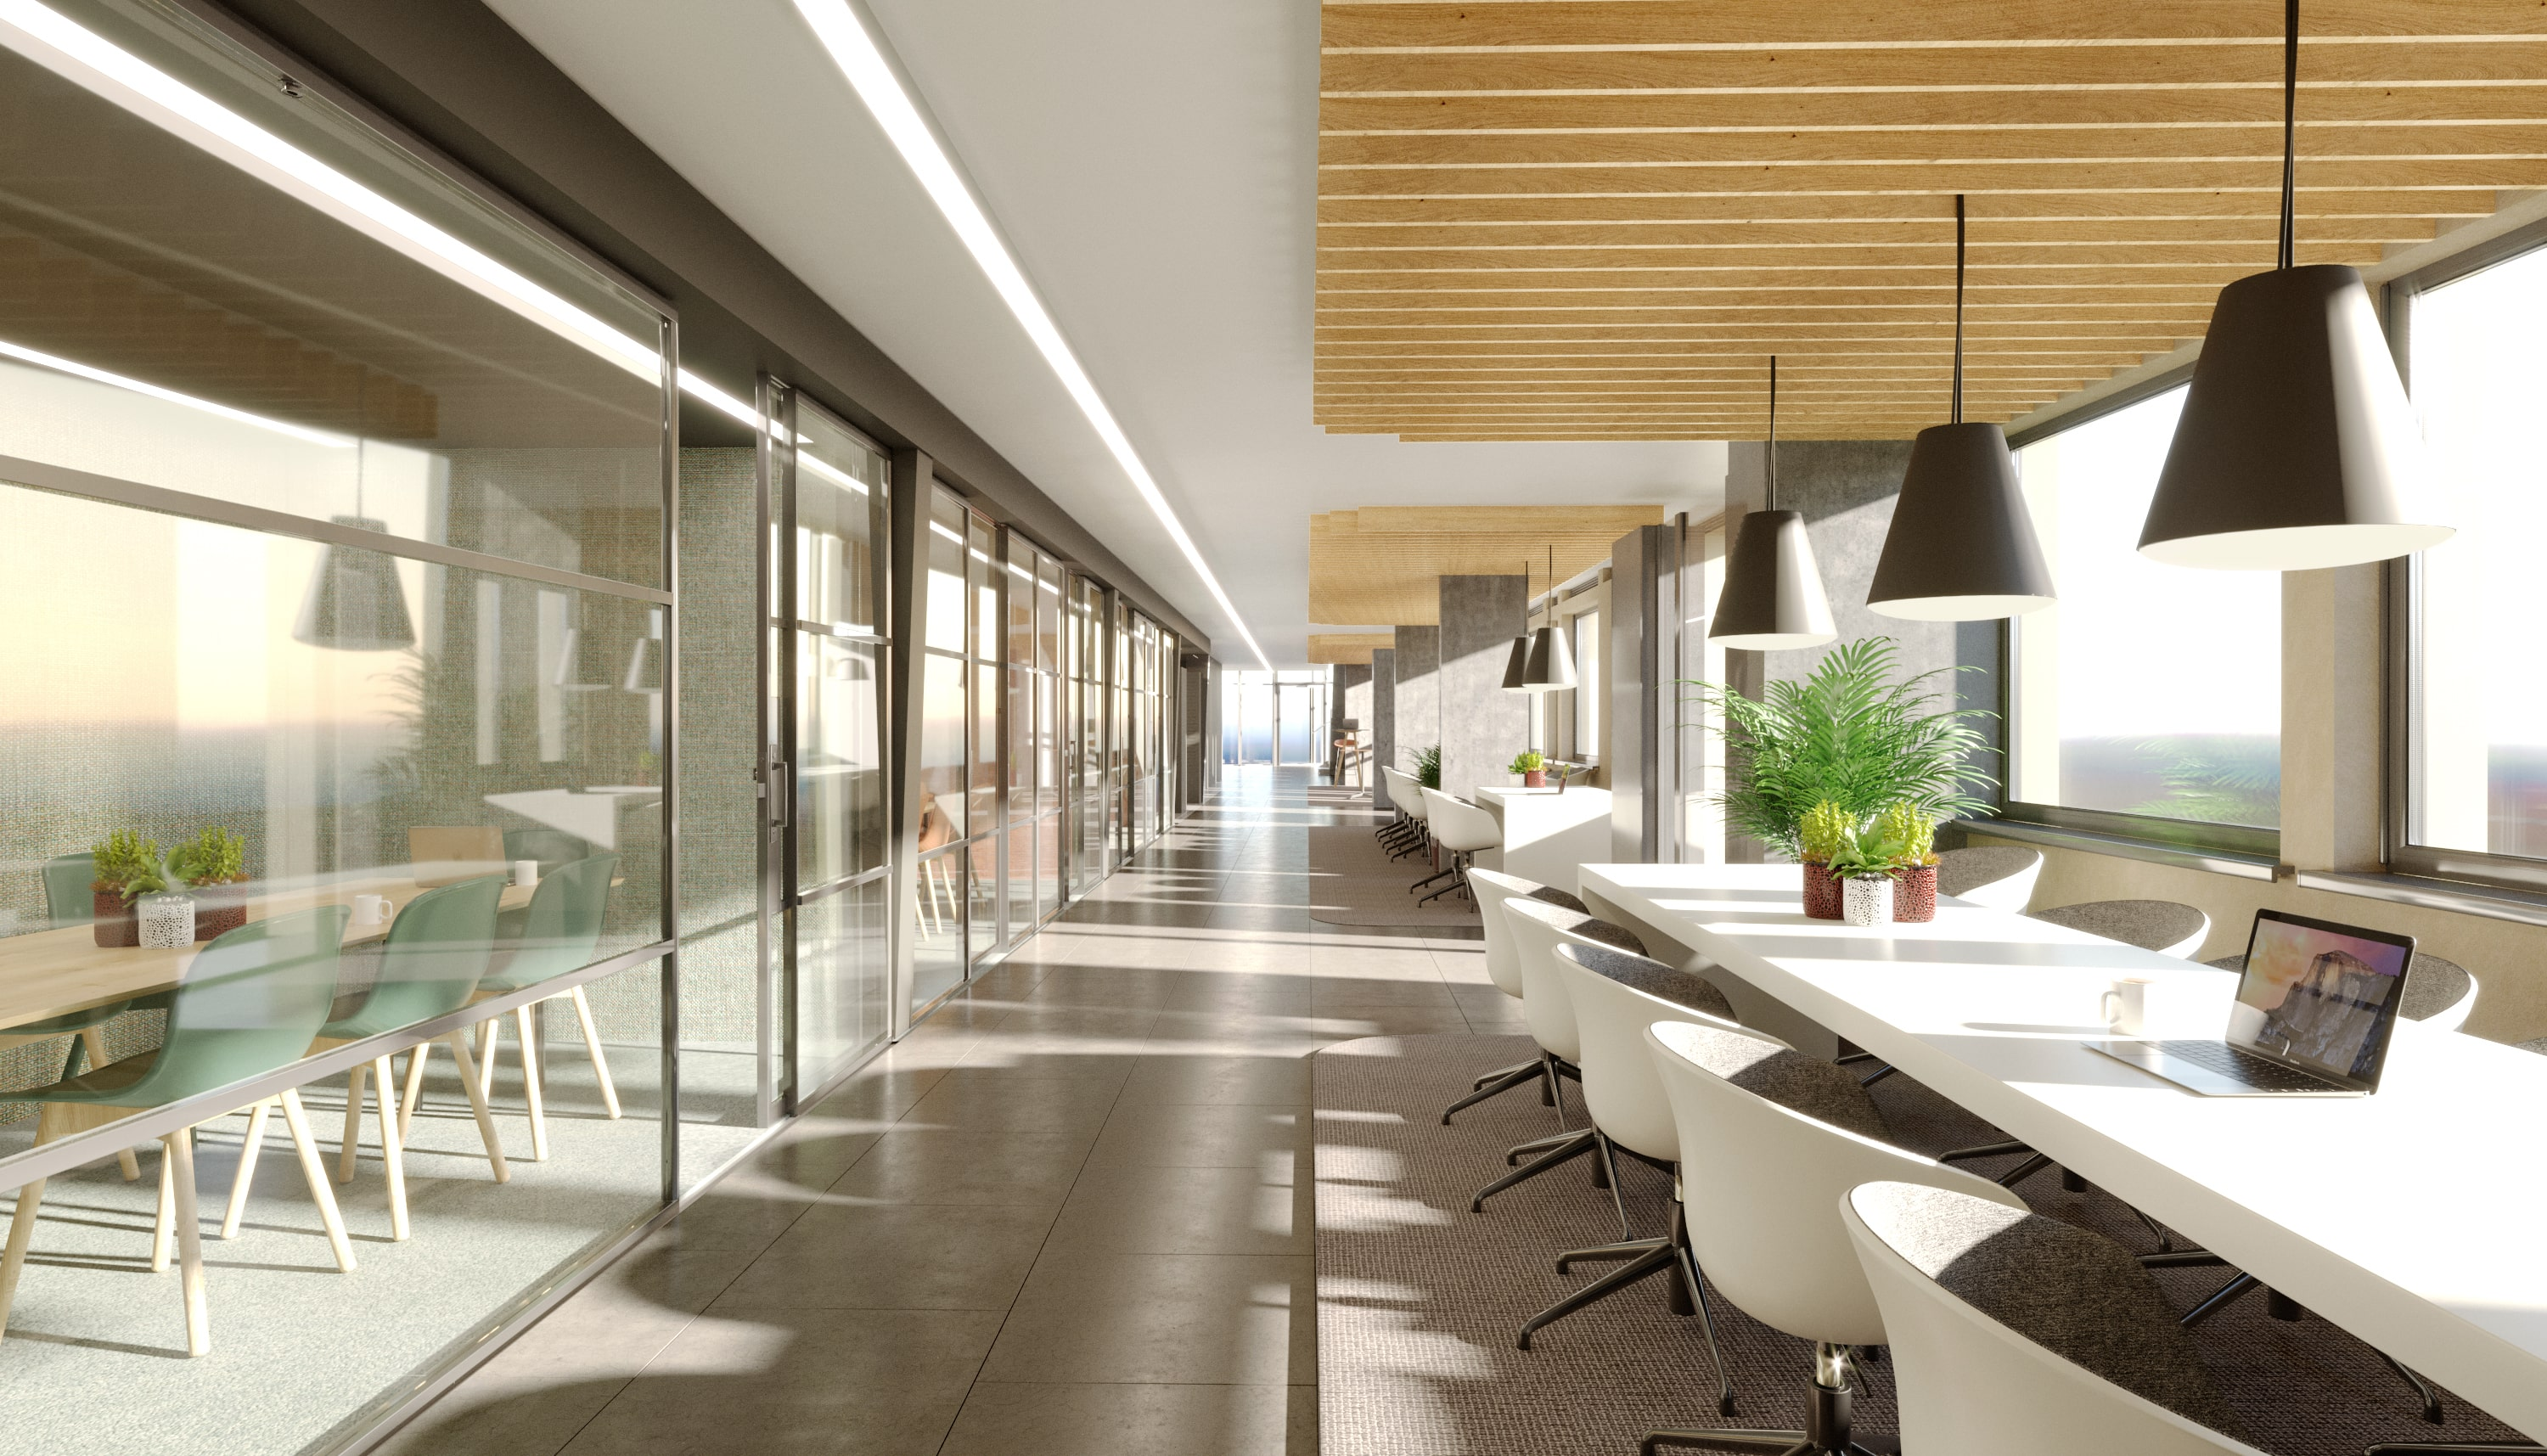 interior visualisation - meeting rooms cgi 3 altrincham